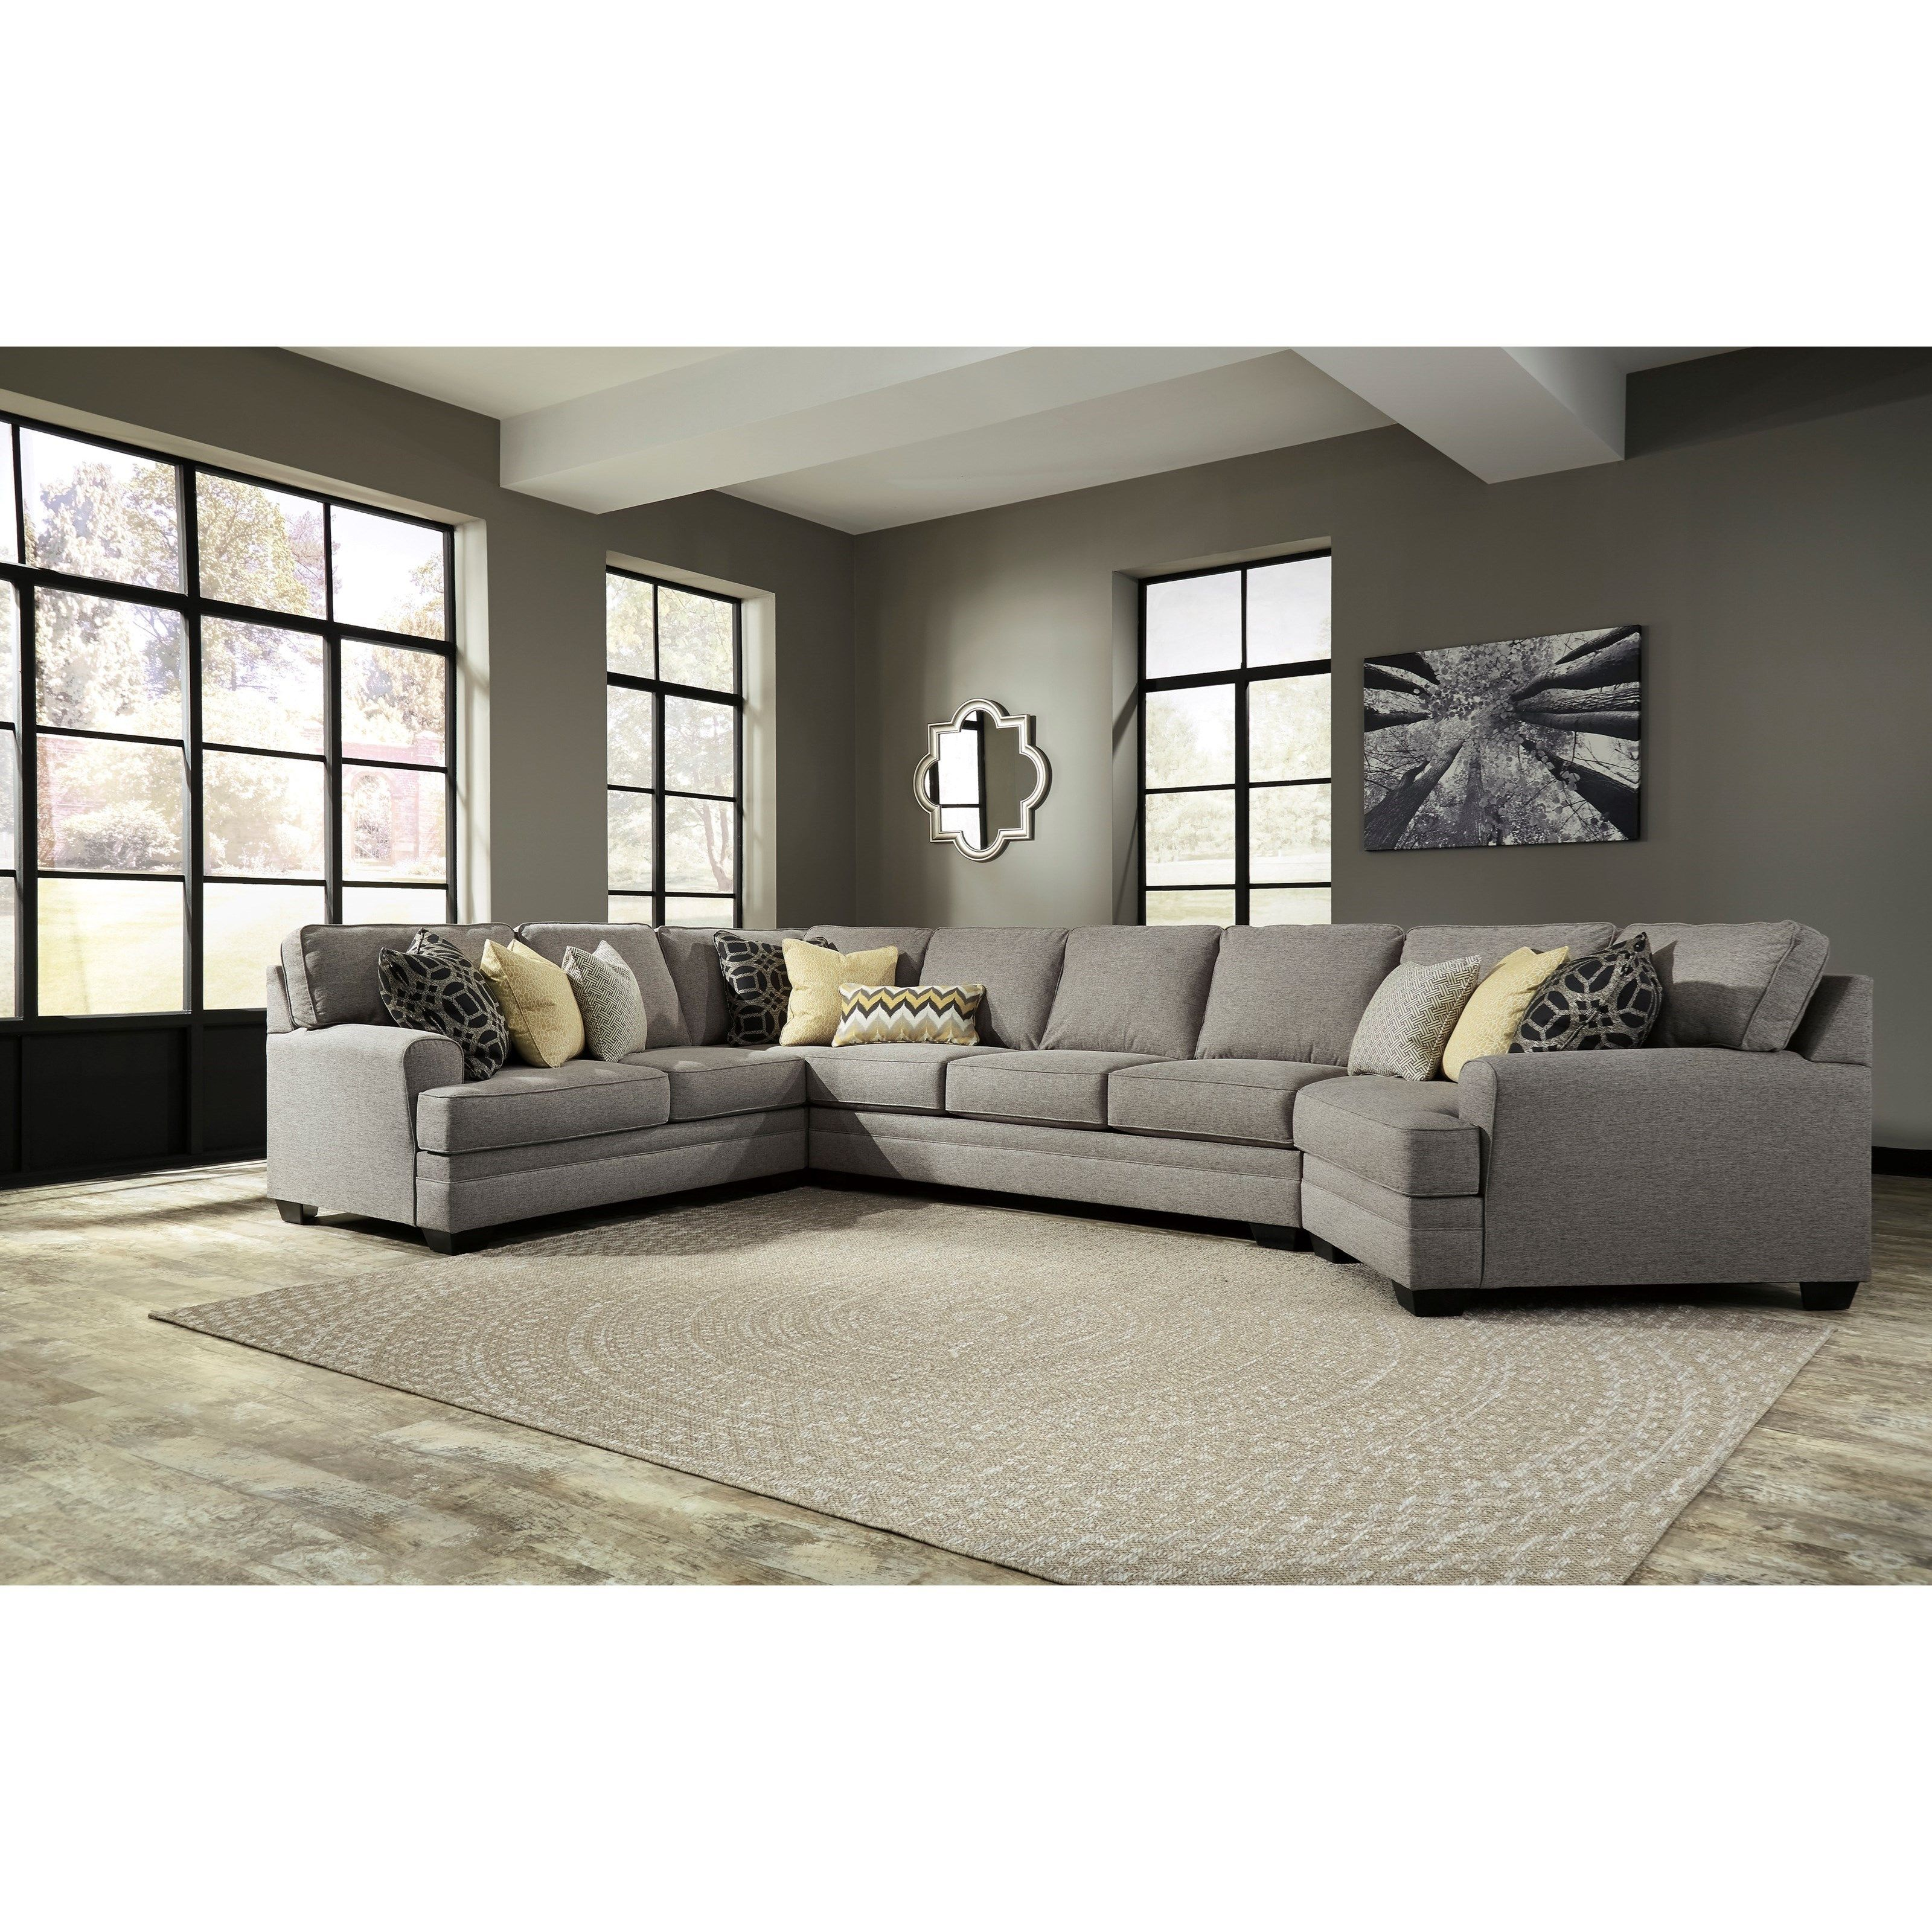 Cresson Contemporary 4 Piece Sectional W Cuddler Armless Sofa By Benchcraft Furniture Mattress Furniture Sectional Sofa